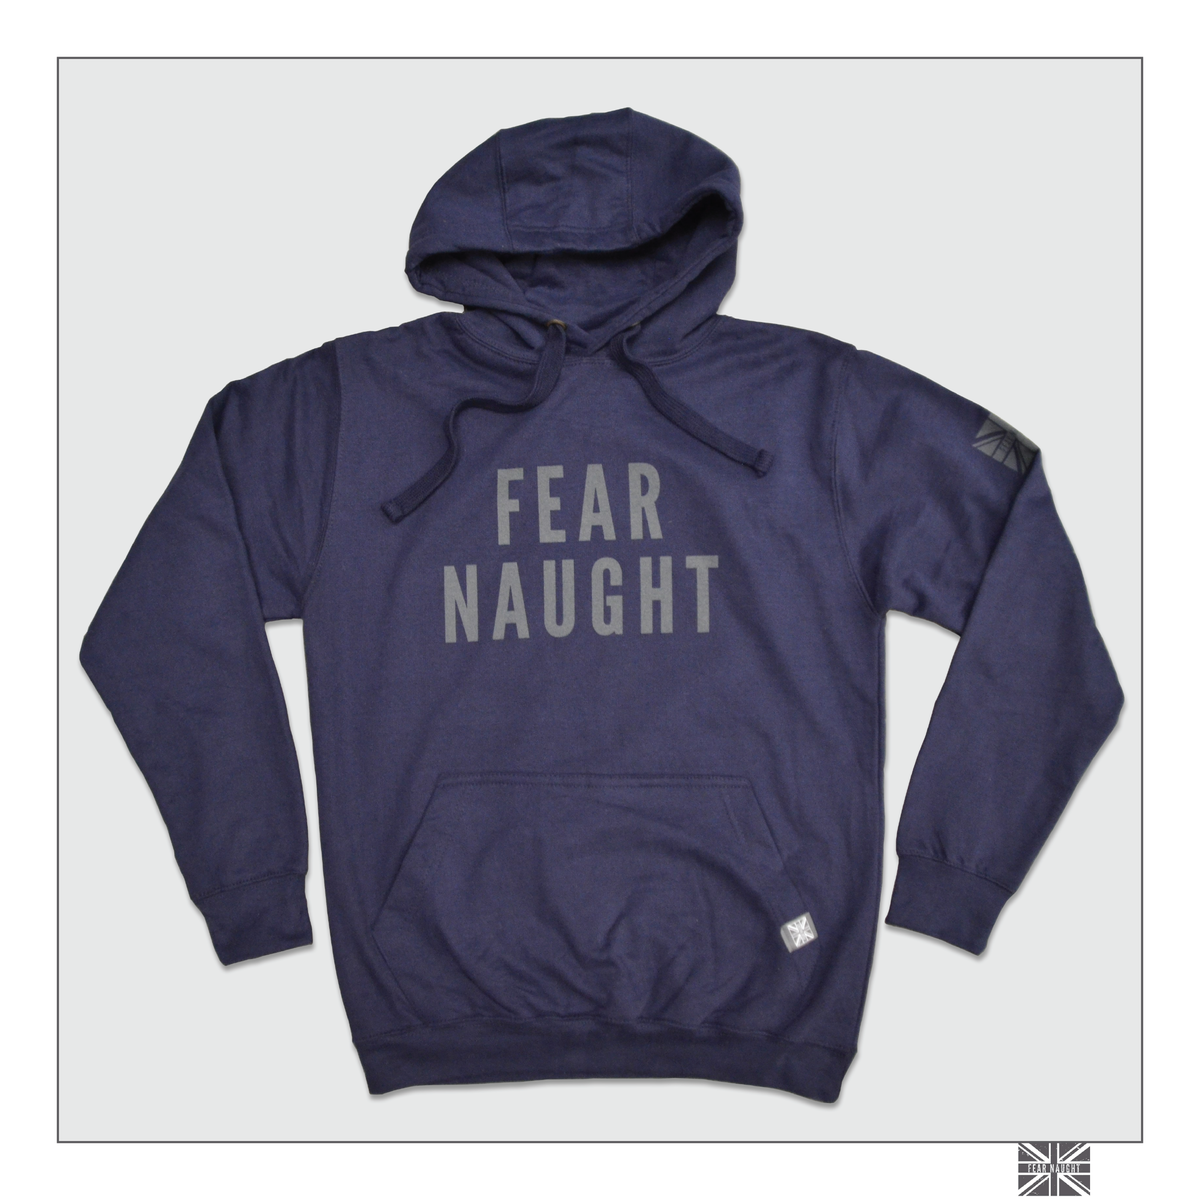 Image of Fear Naught Hooded Top - Navy